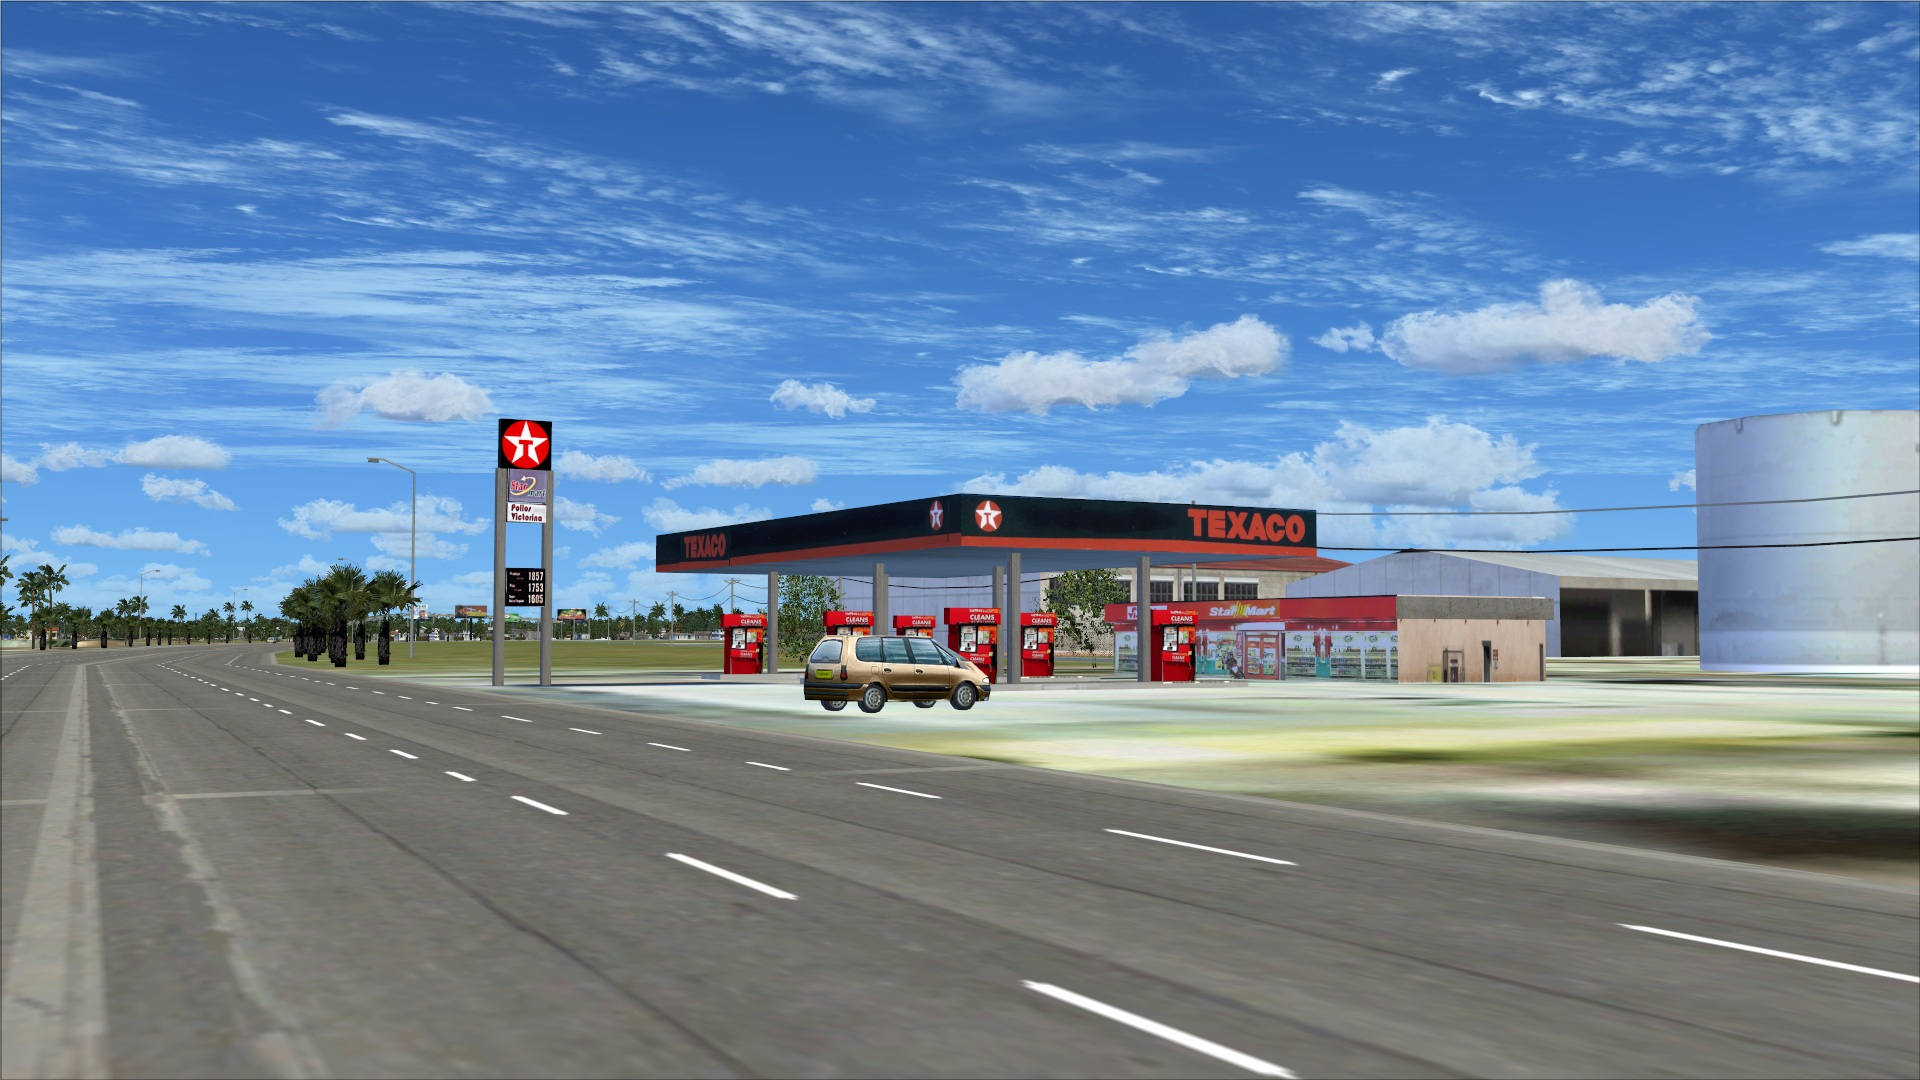 Impressive Petrol station on Parque Jose Francisco Pena Gomez roadway 1920 x 1080 · 467 kB · jpeg